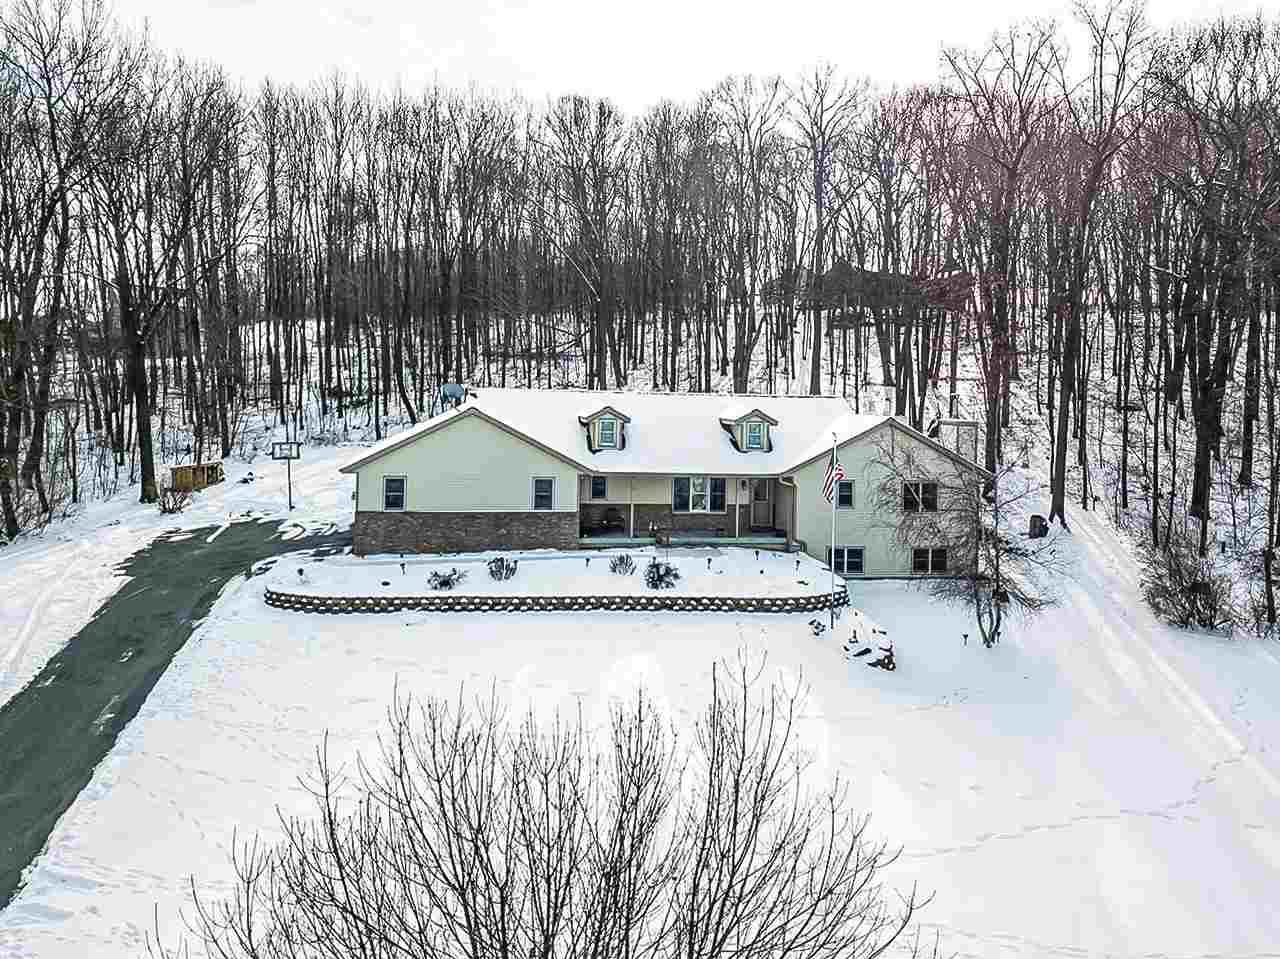 Welcome Home to this spacious, open-concept ranch home on 1.5 acres with Deeded access to the Wisconsin River!! Kitchen with in-lay tile floors, Corain ctrs, pantry and Huge island open up to huge Great Rm with vaulted ceilings, gas fireplace. 1st flr Laundry/mudrm out to 3 car garage w/ stairs to basement!!  Primary bedrm w/private bath & WIC!  LL has 4th&5th bedrms, FamRm w/ wood burning stove, wet bar & full bath!  Outside deck updated to trex decking, Retaining wall in front just re-done and driveway sealed. Roof and siding new in 2019!!  See assoc docs for more info!!  Call now!!